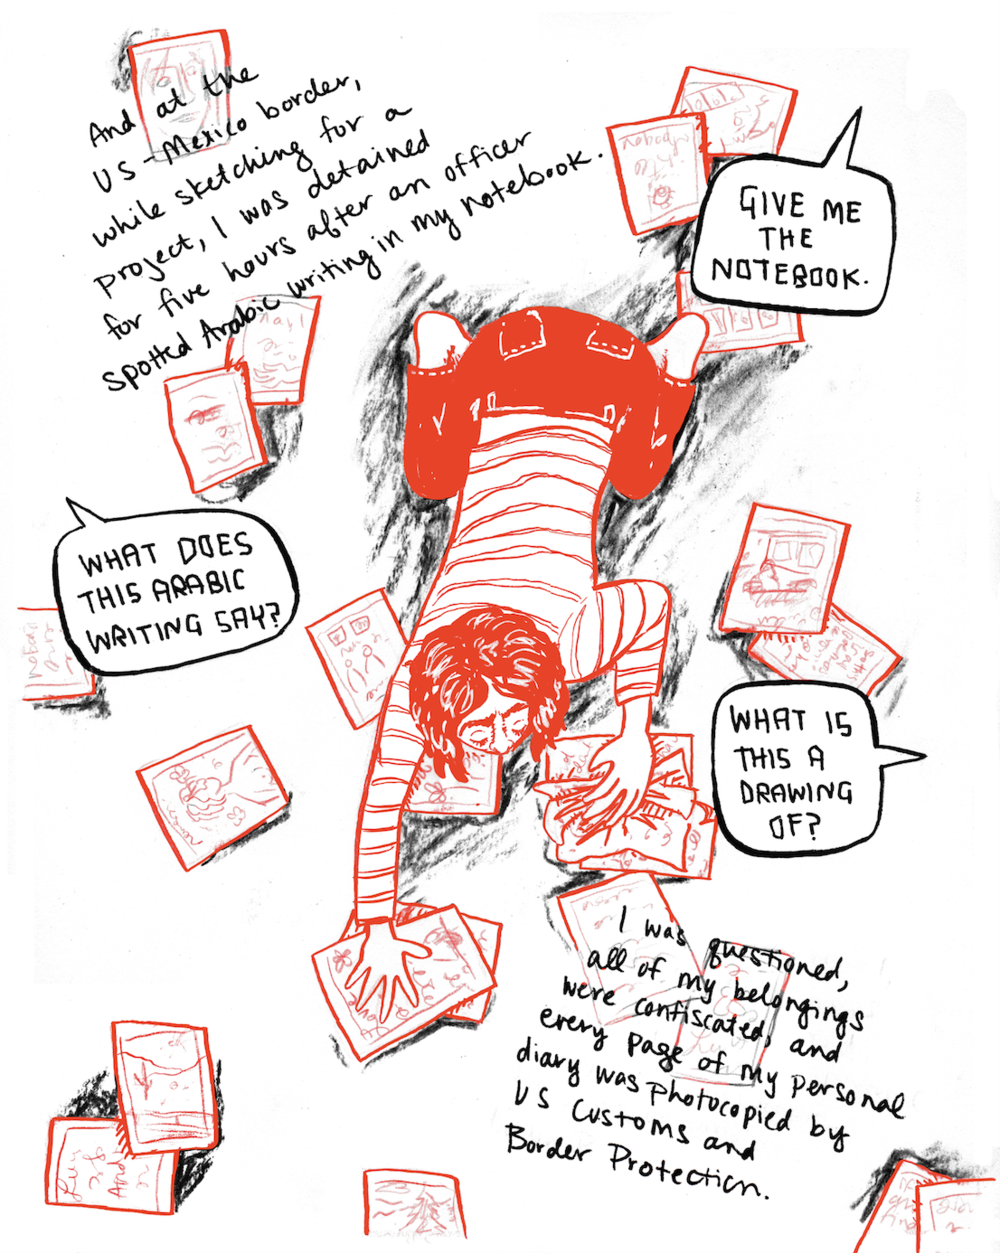 Courtesy of Leila from her experience of being questioned for drawing near the U.S. border